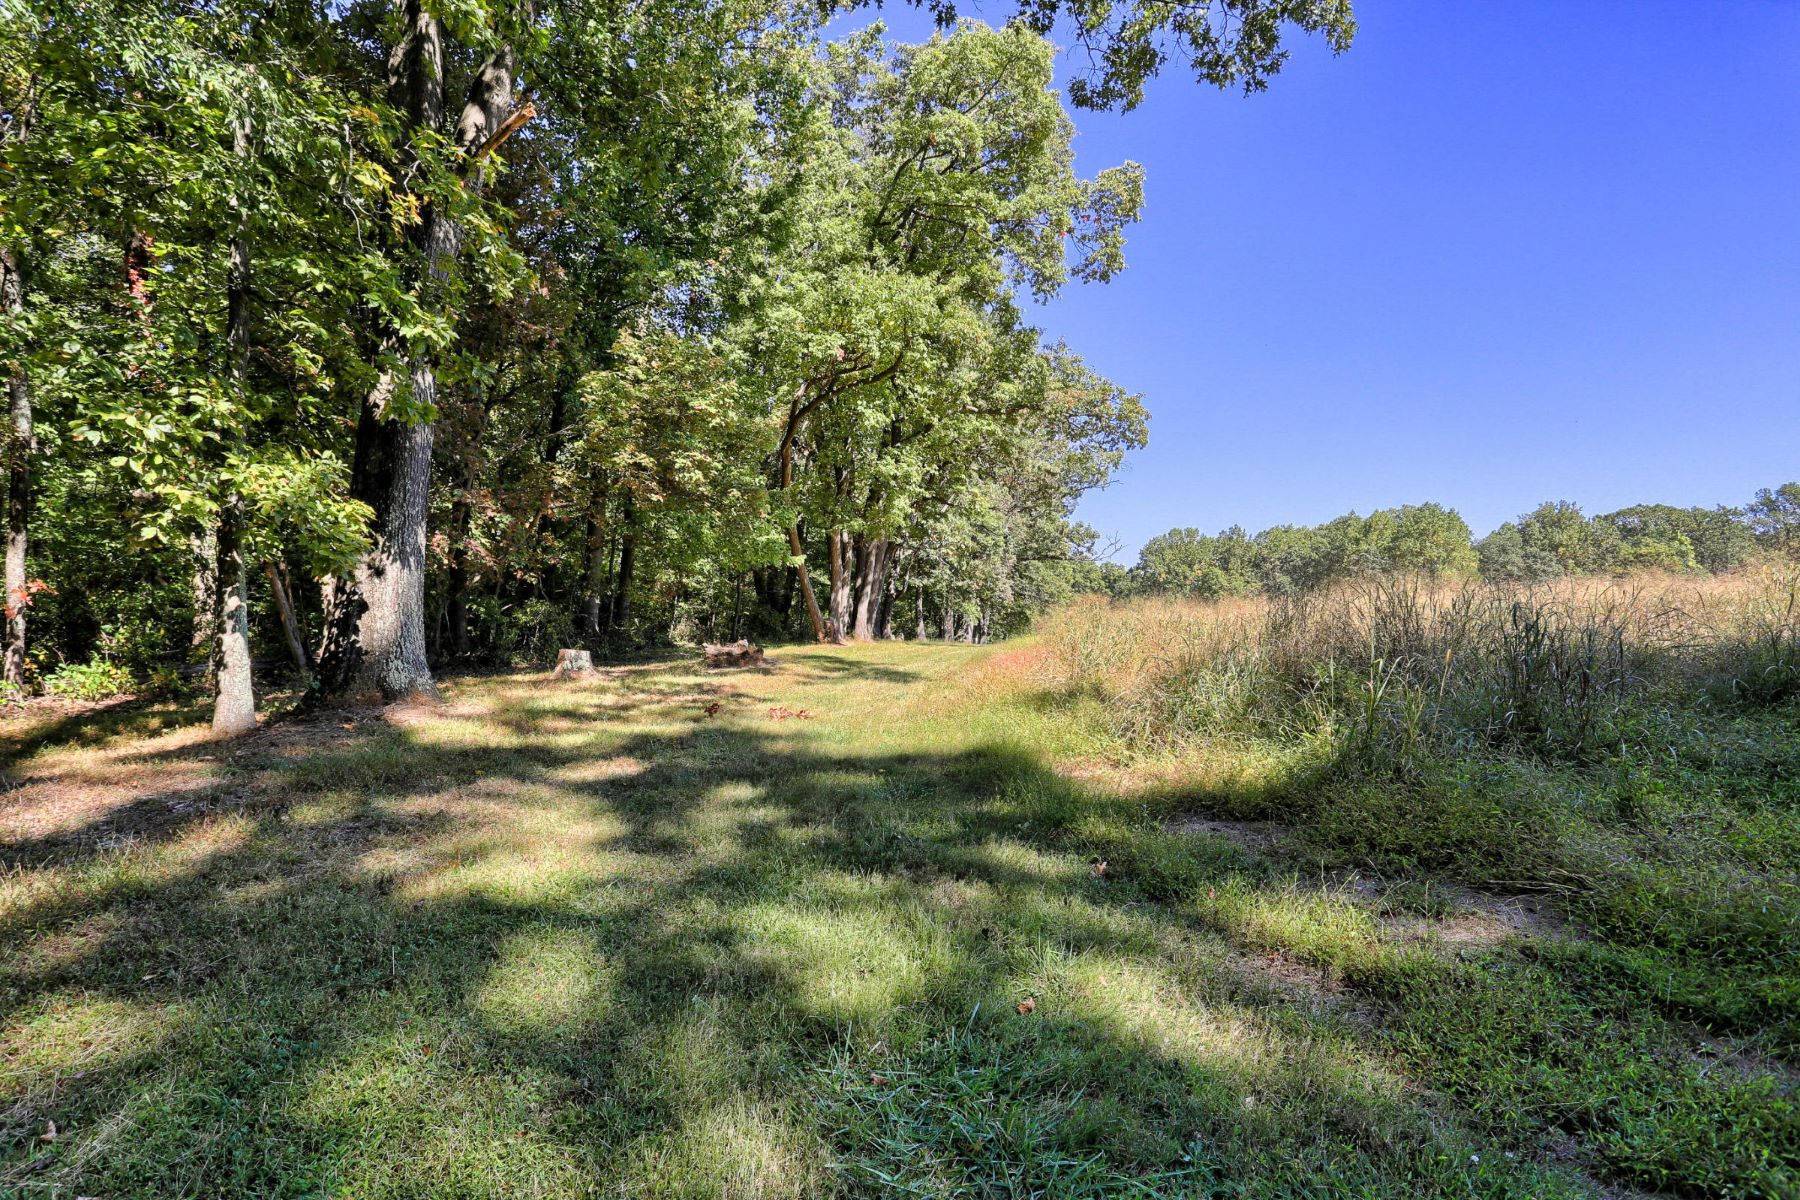 Land for Sale at Hilldale Estates 8 Joann Lane lot 4 Pequea, Pennsylvania 17565 United States